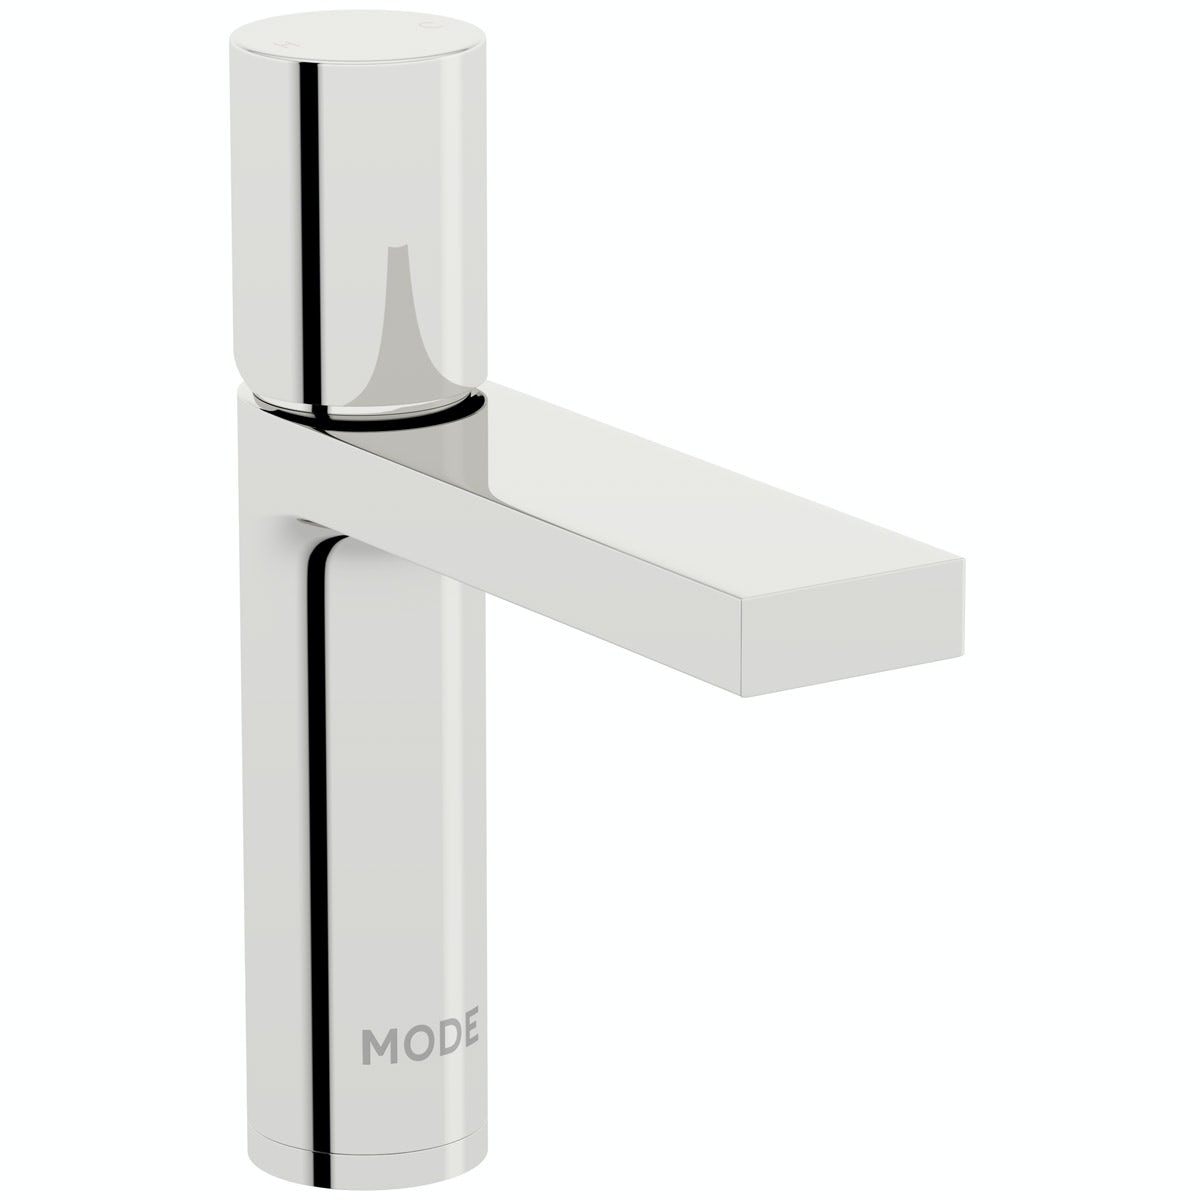 Mode Heath basin mixer tap